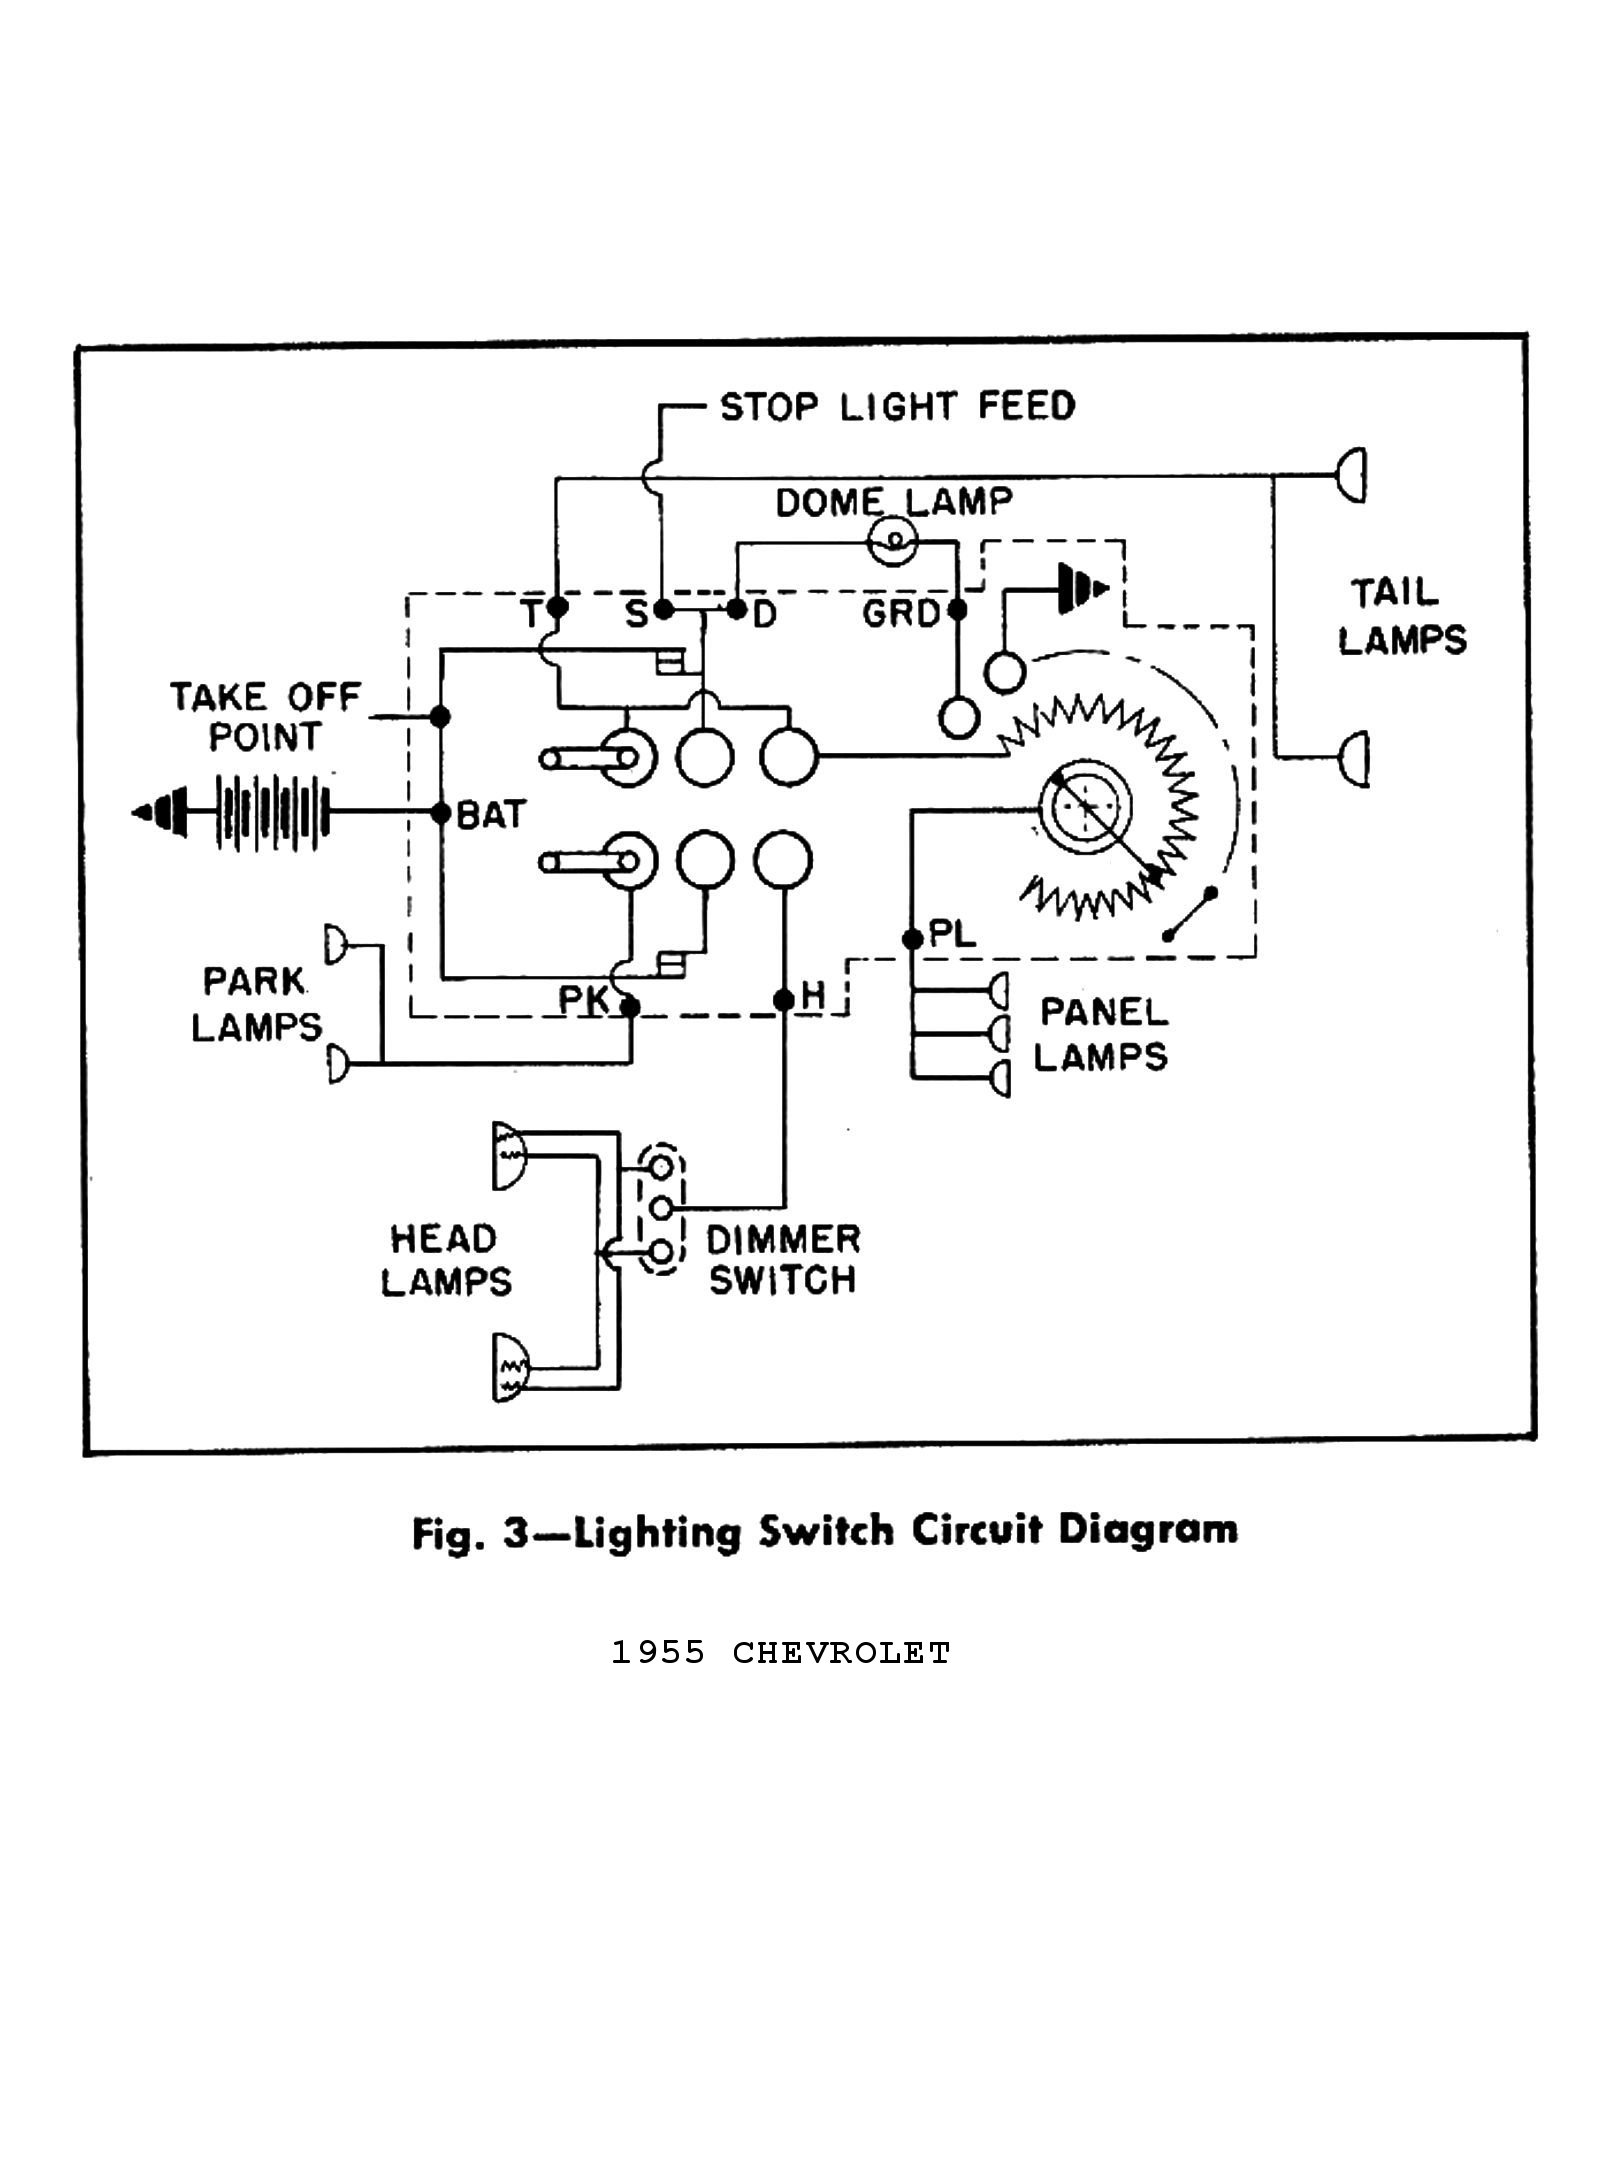 hight resolution of chevy wiring diagrams 1956 chevy dash wiring diagram 1955 truck wiring diagrams 1955 electric windows